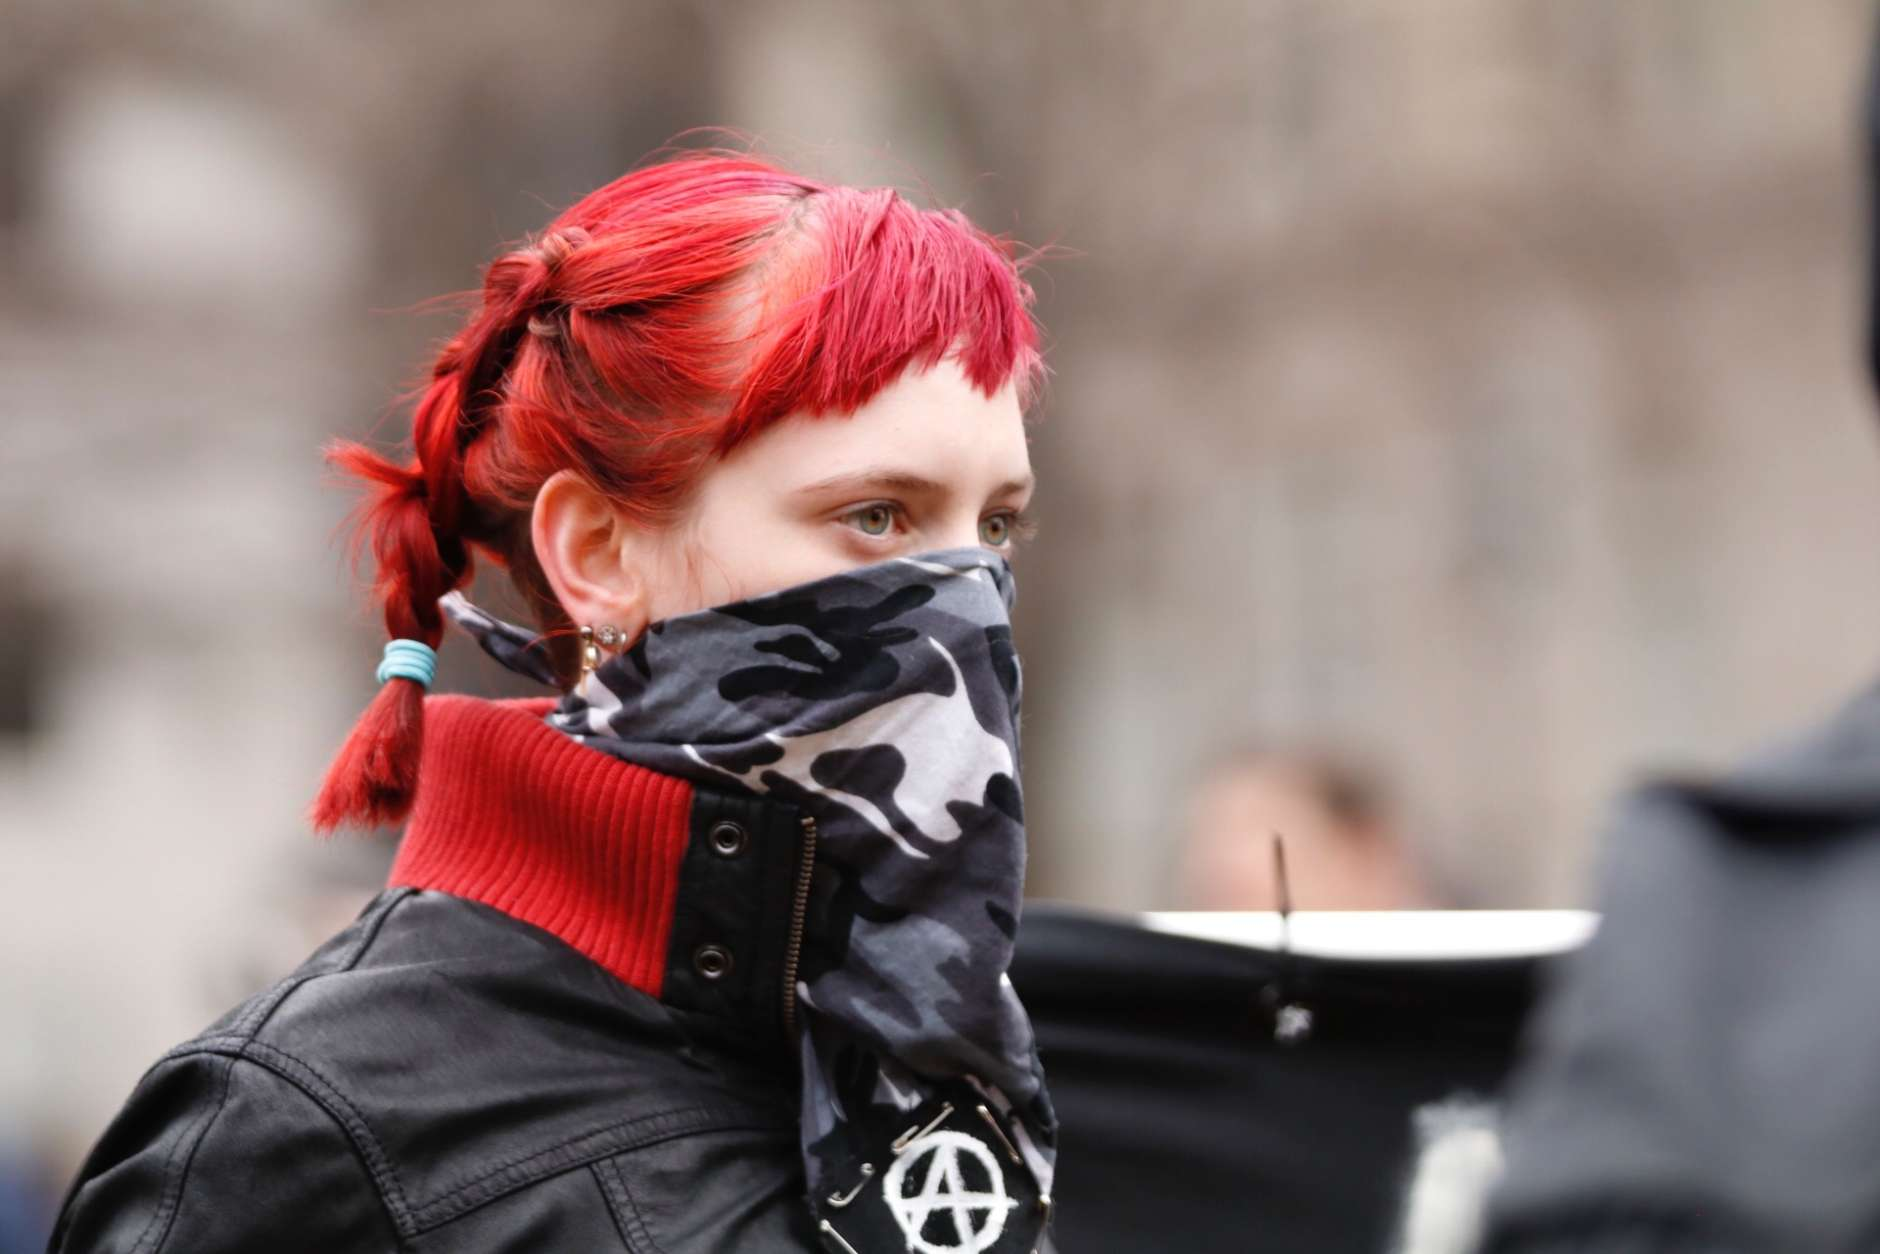 Participant at an anti-Trump rally in McPherson Square on Friday, Jan. 20, 2017. (WTOP/Kate Ryan)